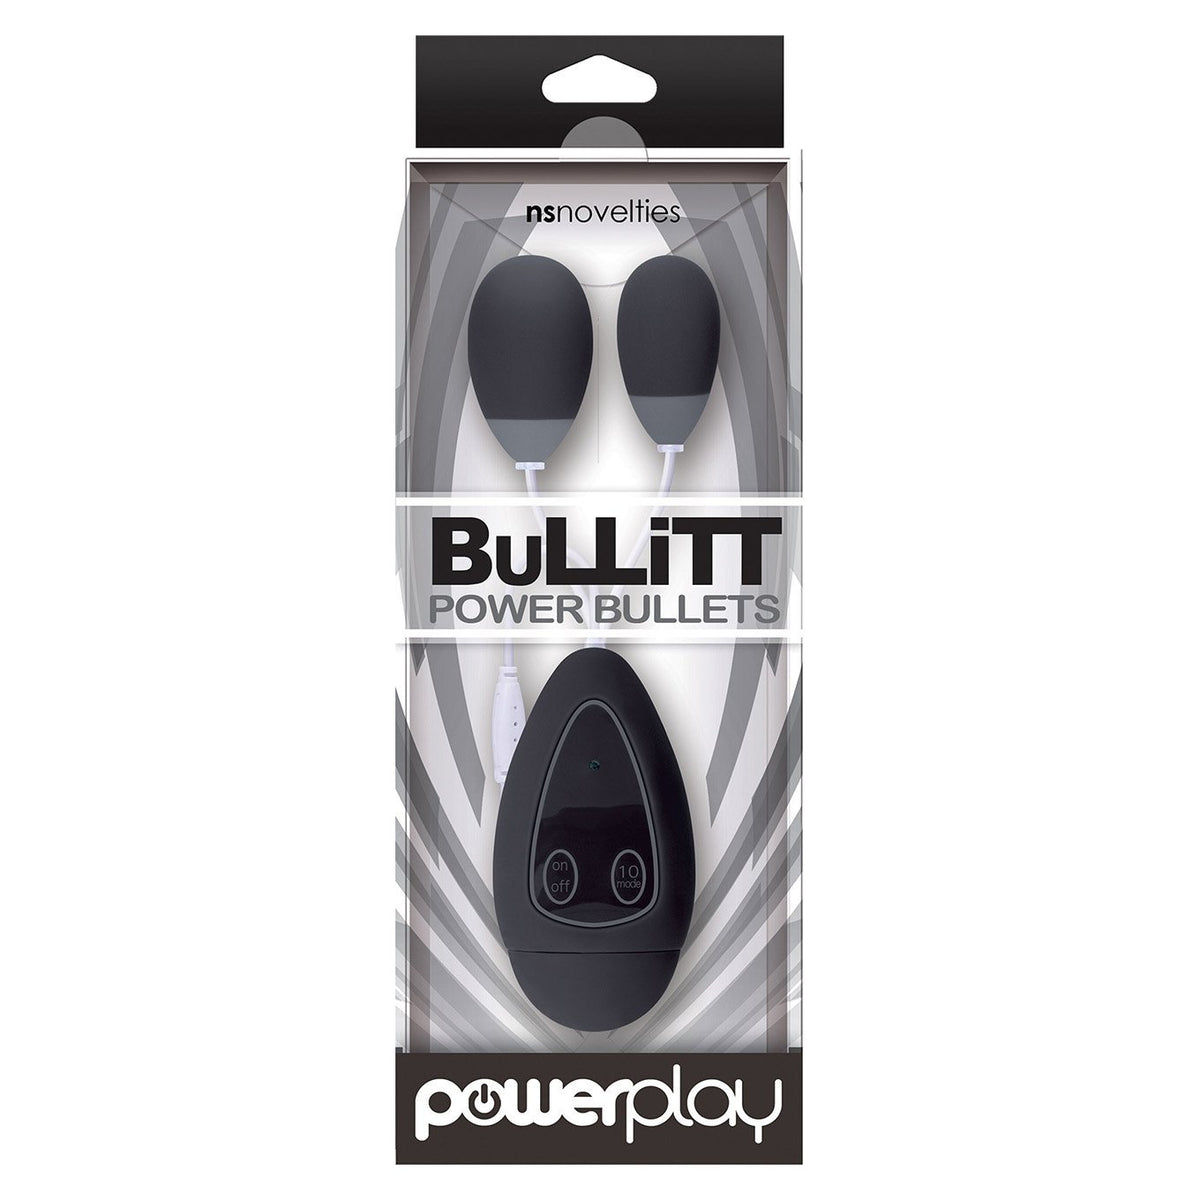 NS Novelties - Powerplay BuLLiTT Power Bullets Double Egg Vibrator (Black) | CherryAffairs Singapore